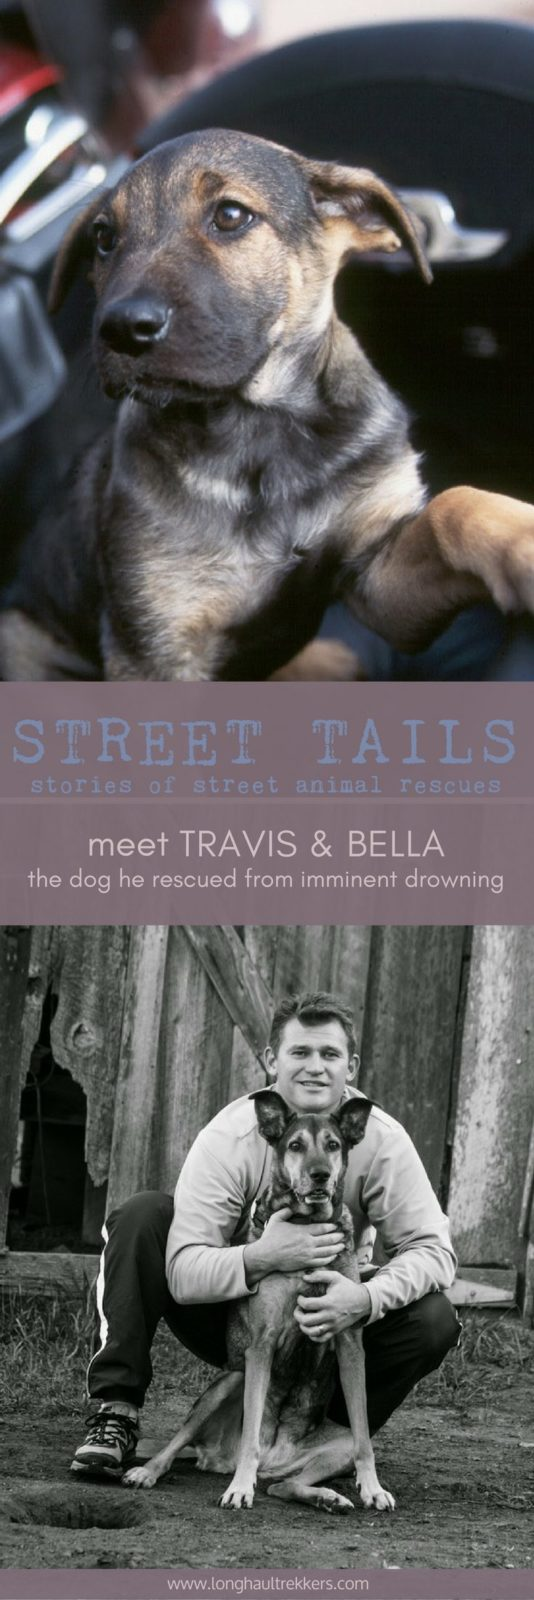 Street Tails: Travis and Bella | Long Haul Trekkers